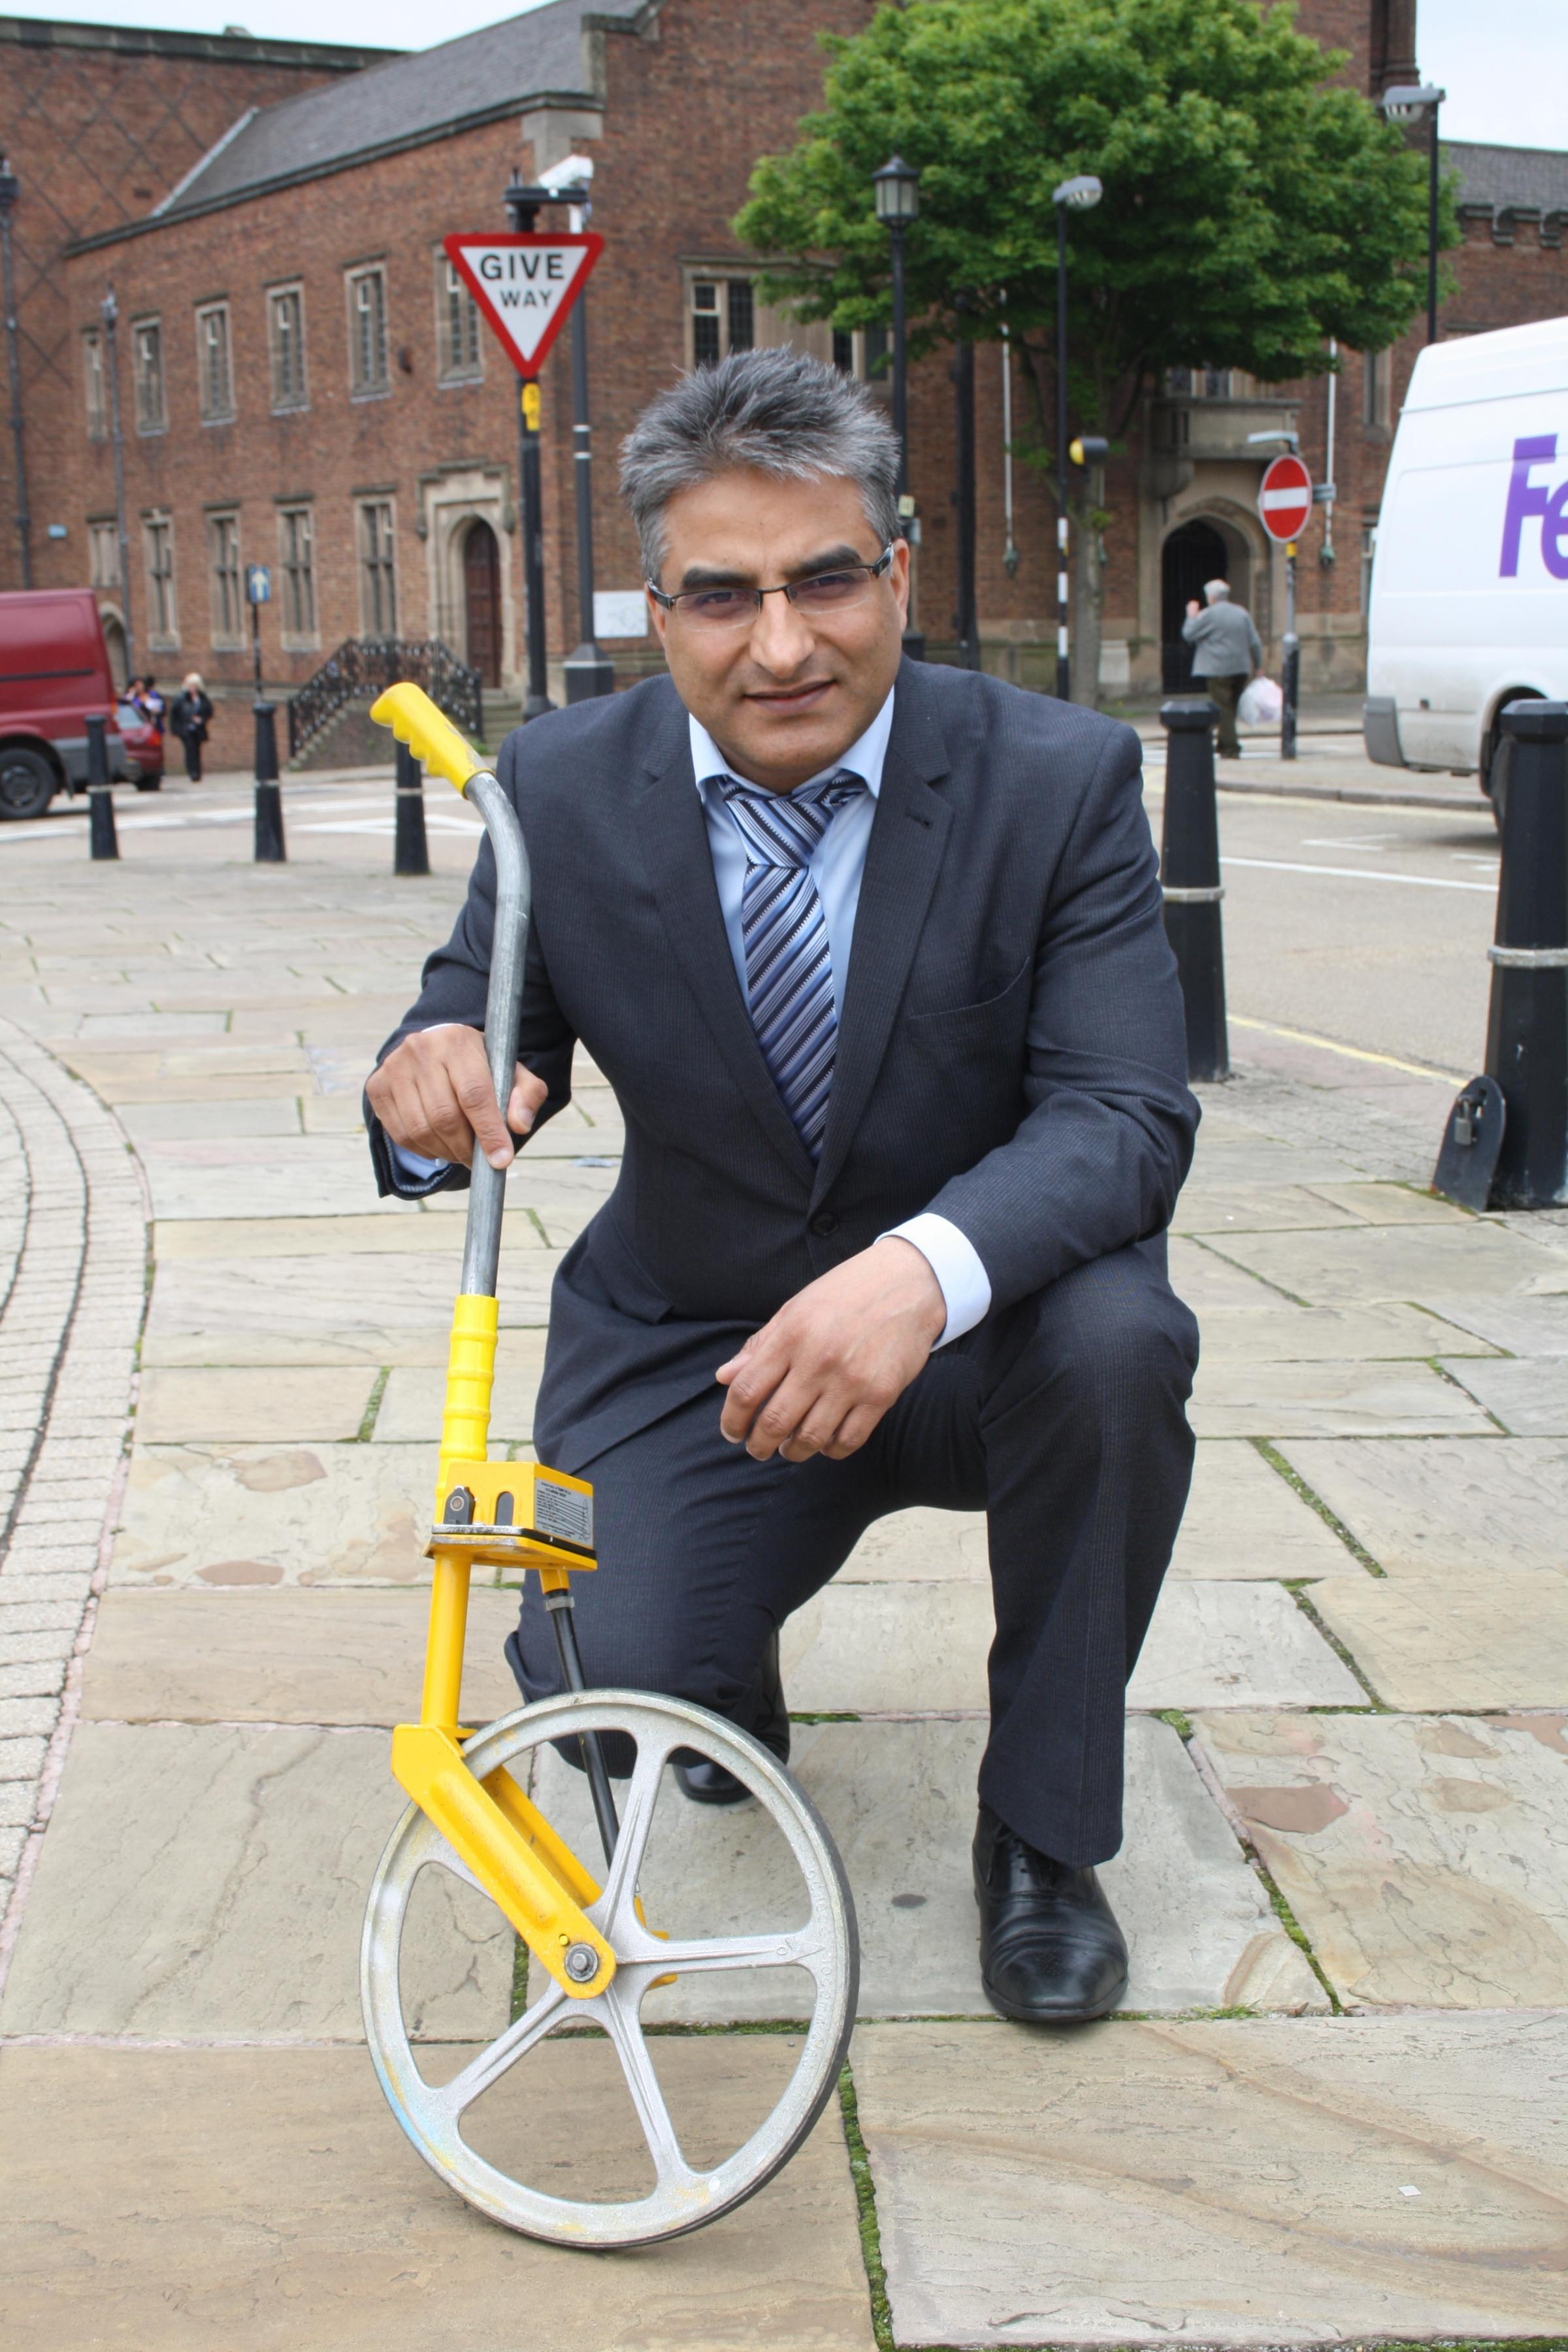 Cllr Kurshid Ahmed is aiming to get the measure of parking space headaches during revamp work in Dudley town centre